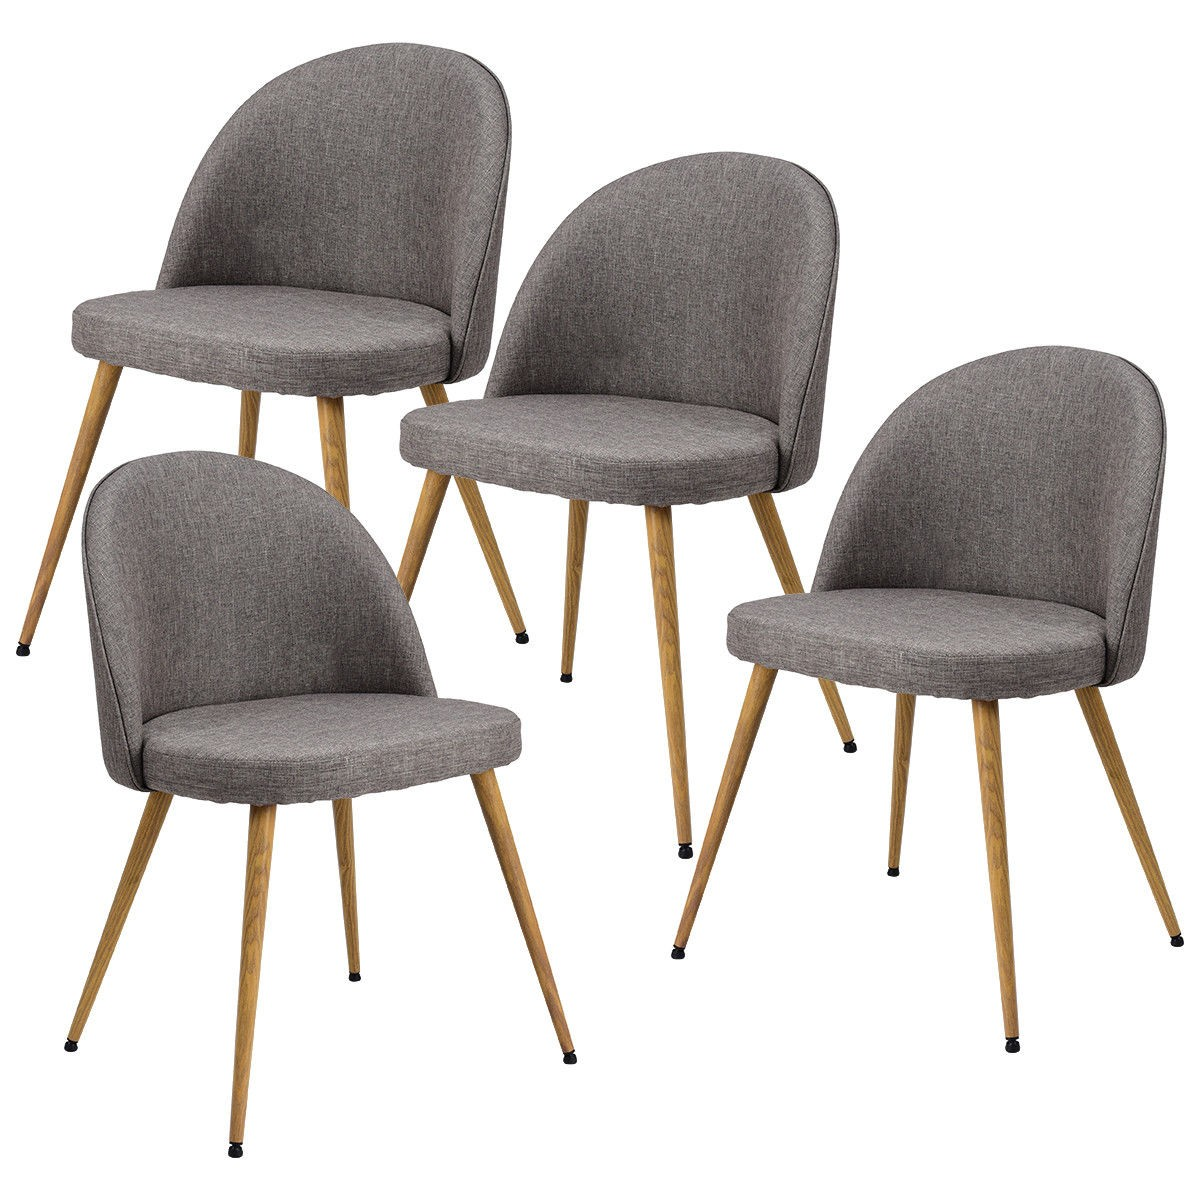 Accent Dining Chairs Set Of 4 Fabric Cushion Seat Accent Arm Dining Chairs By